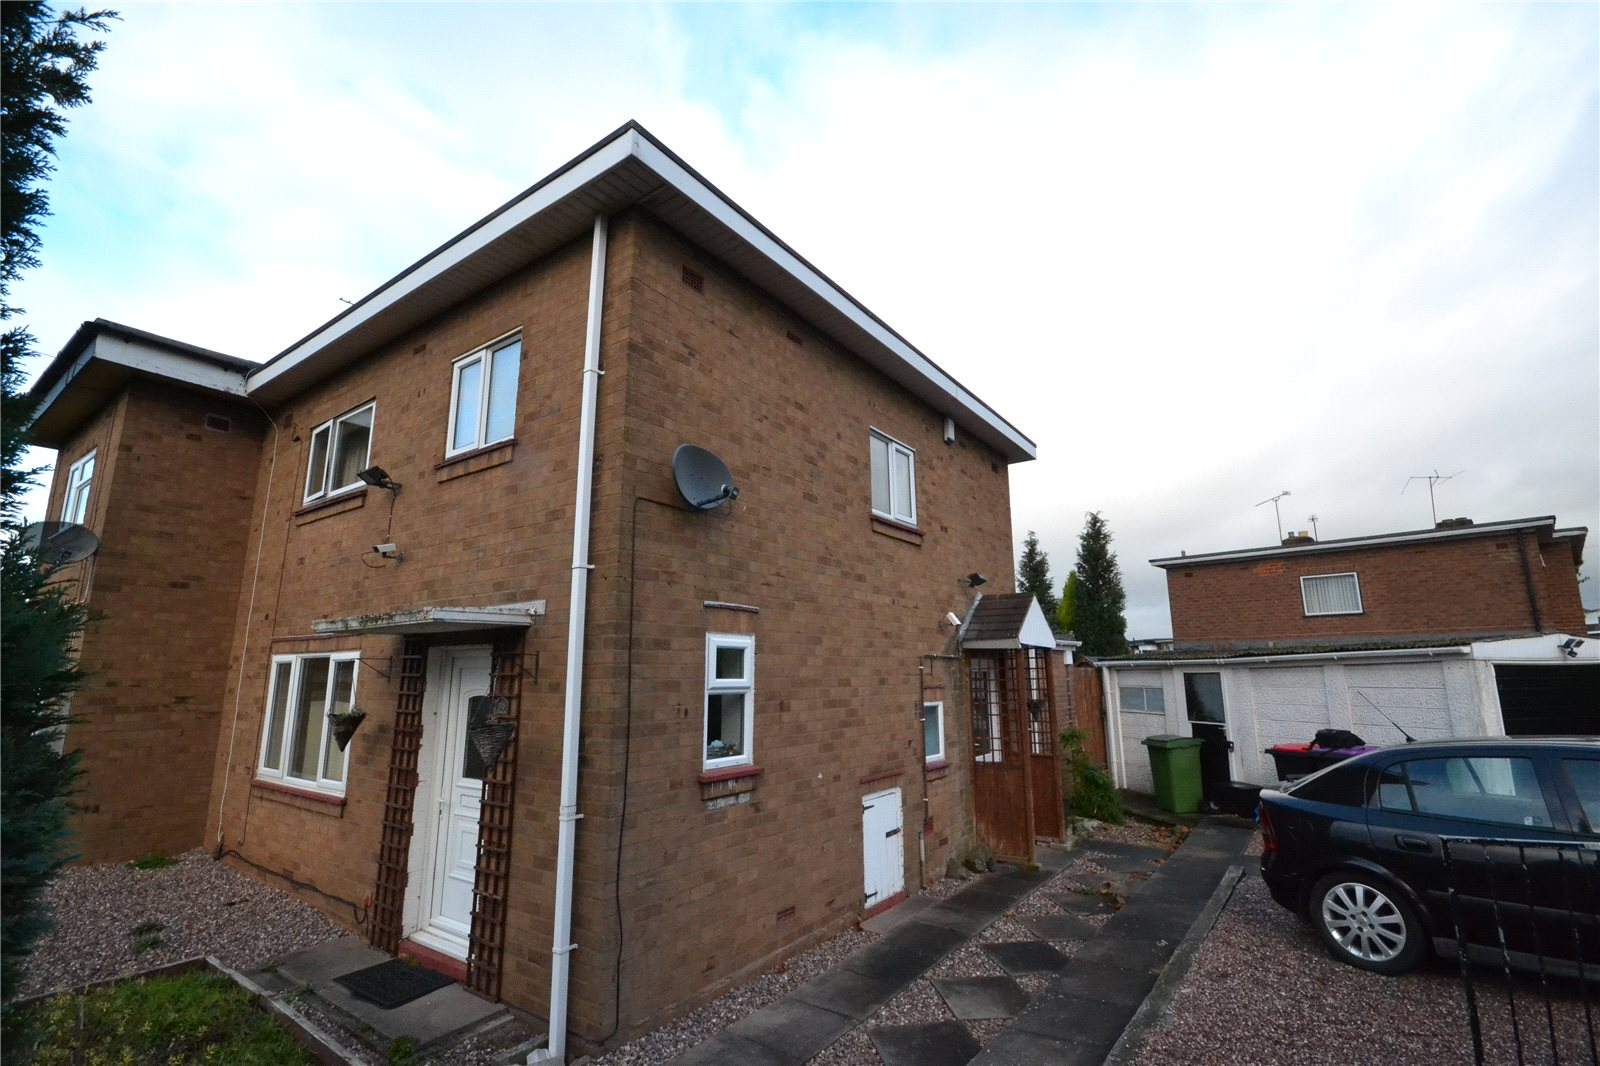 Semi Detached House for sale in 59 Turreff Avenue, Donnington, Telford, TF2